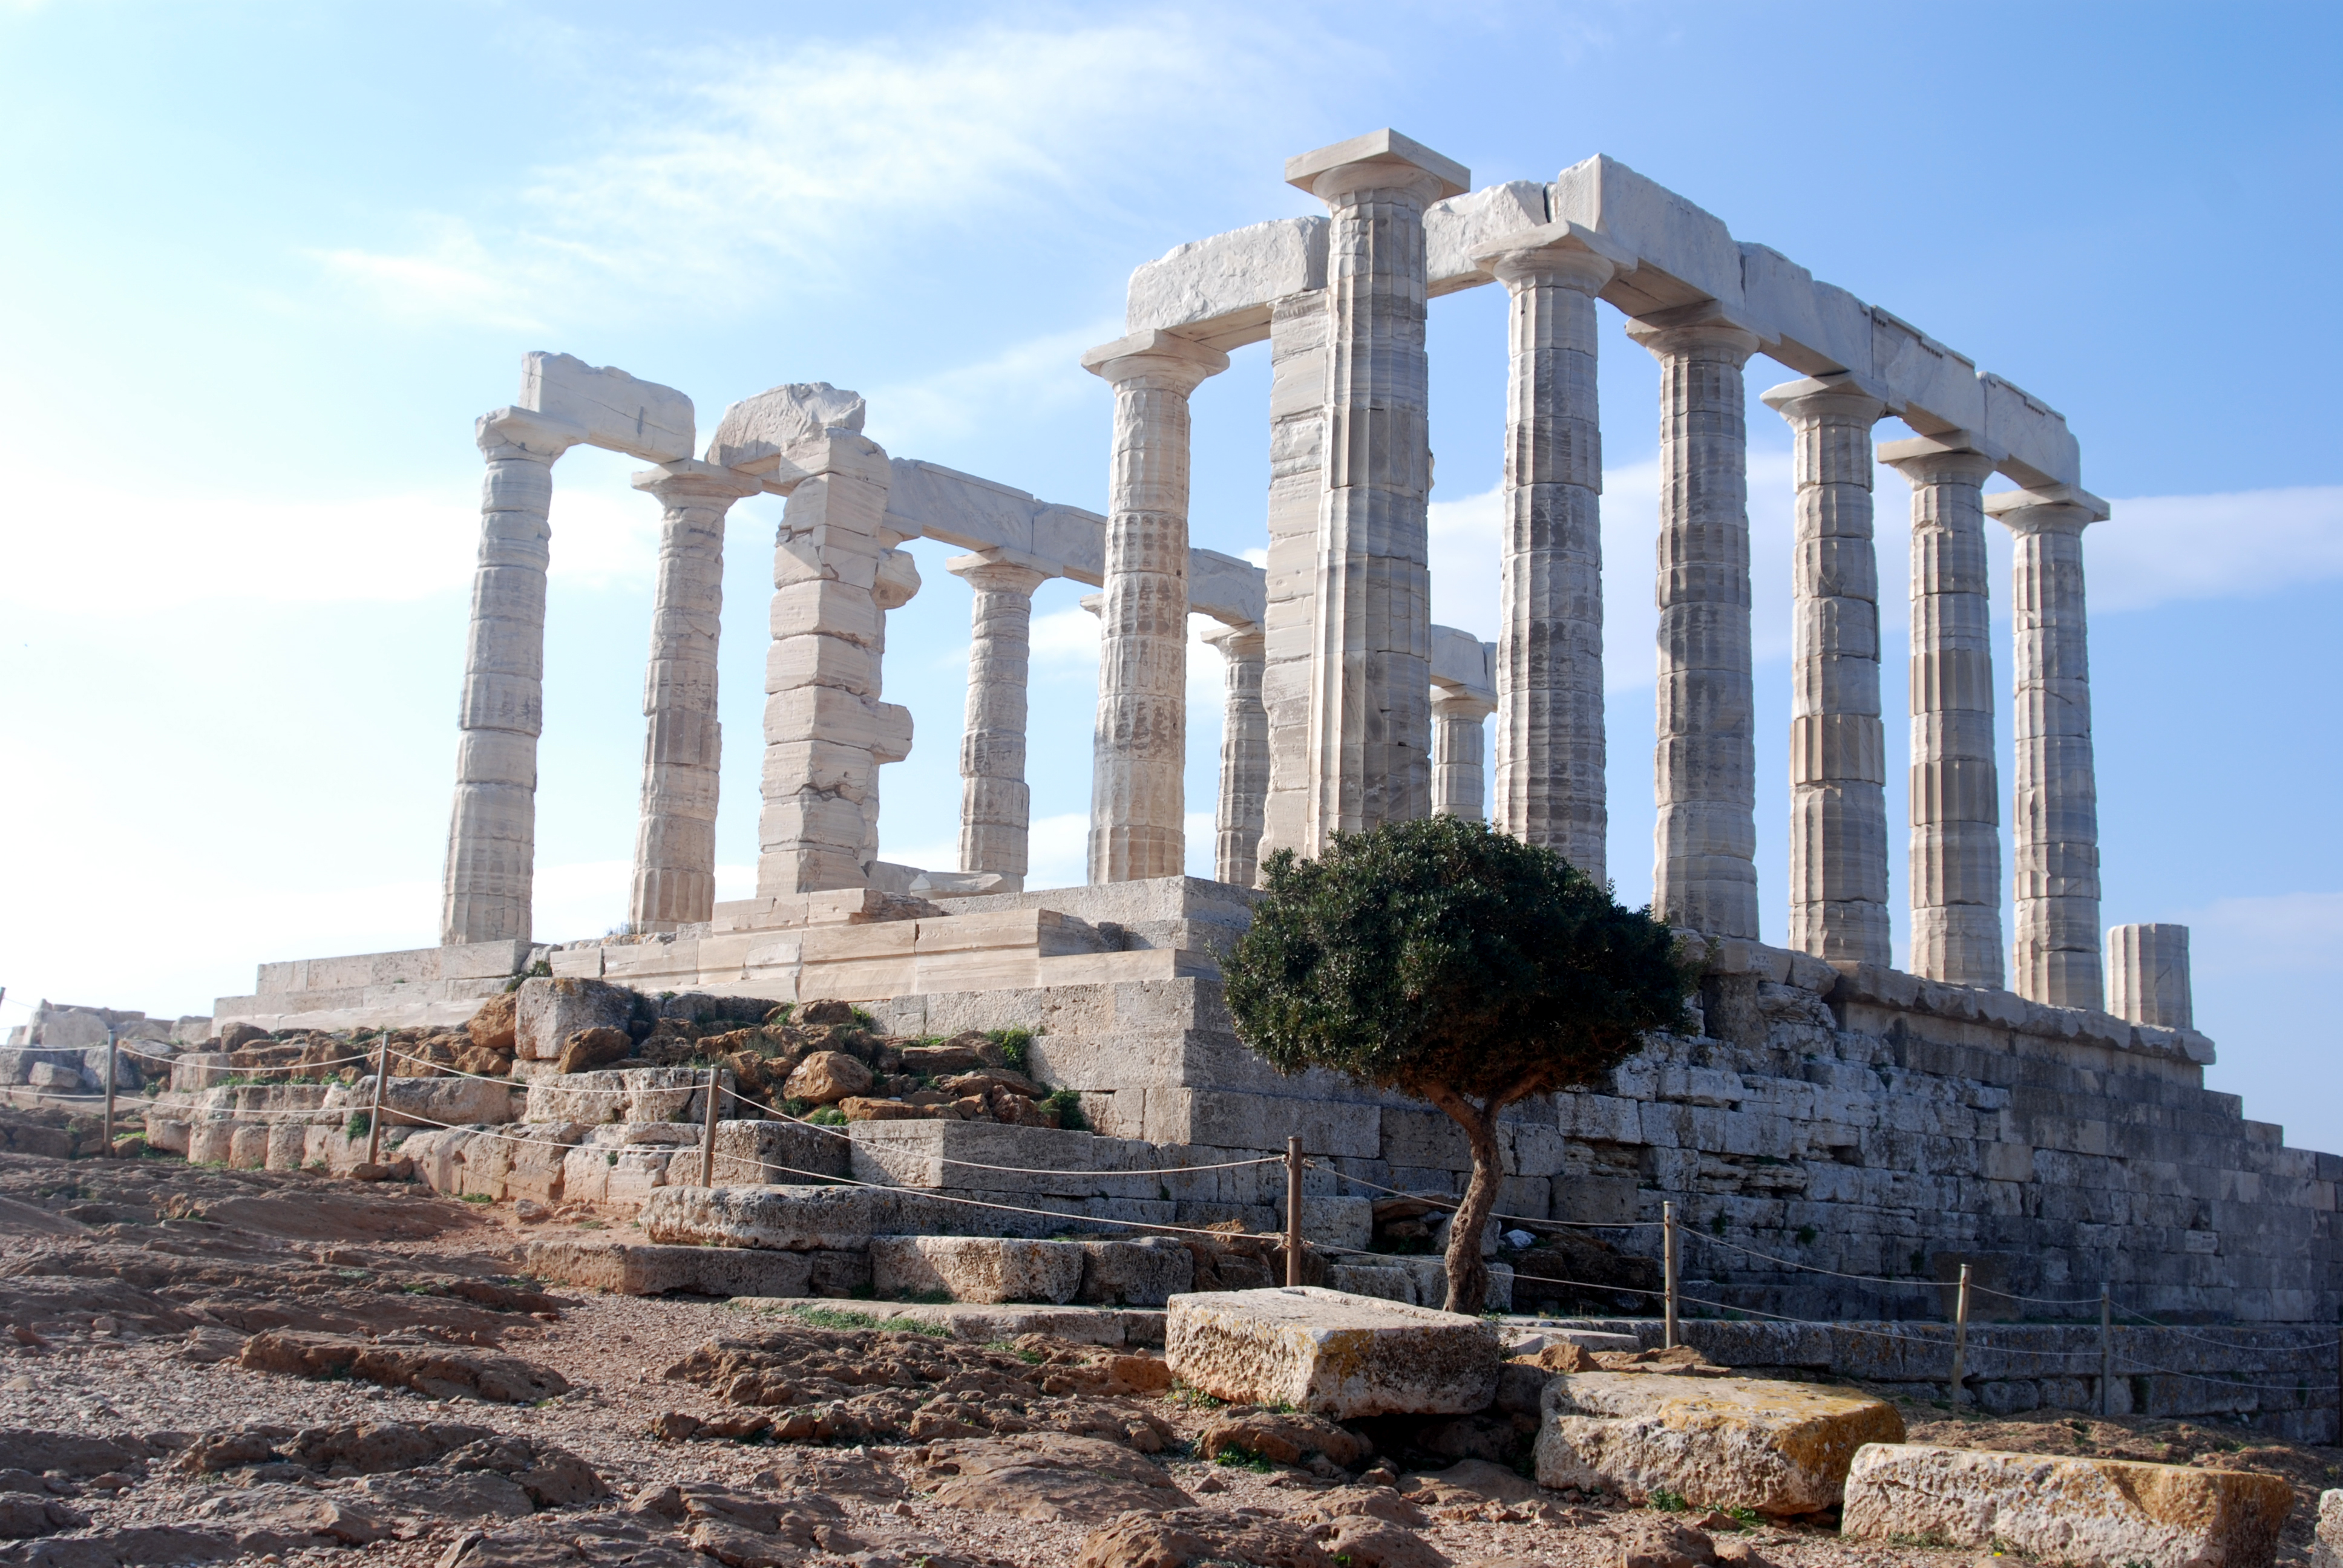 File:Temple of Poseidon at Cape Sounion.jpg